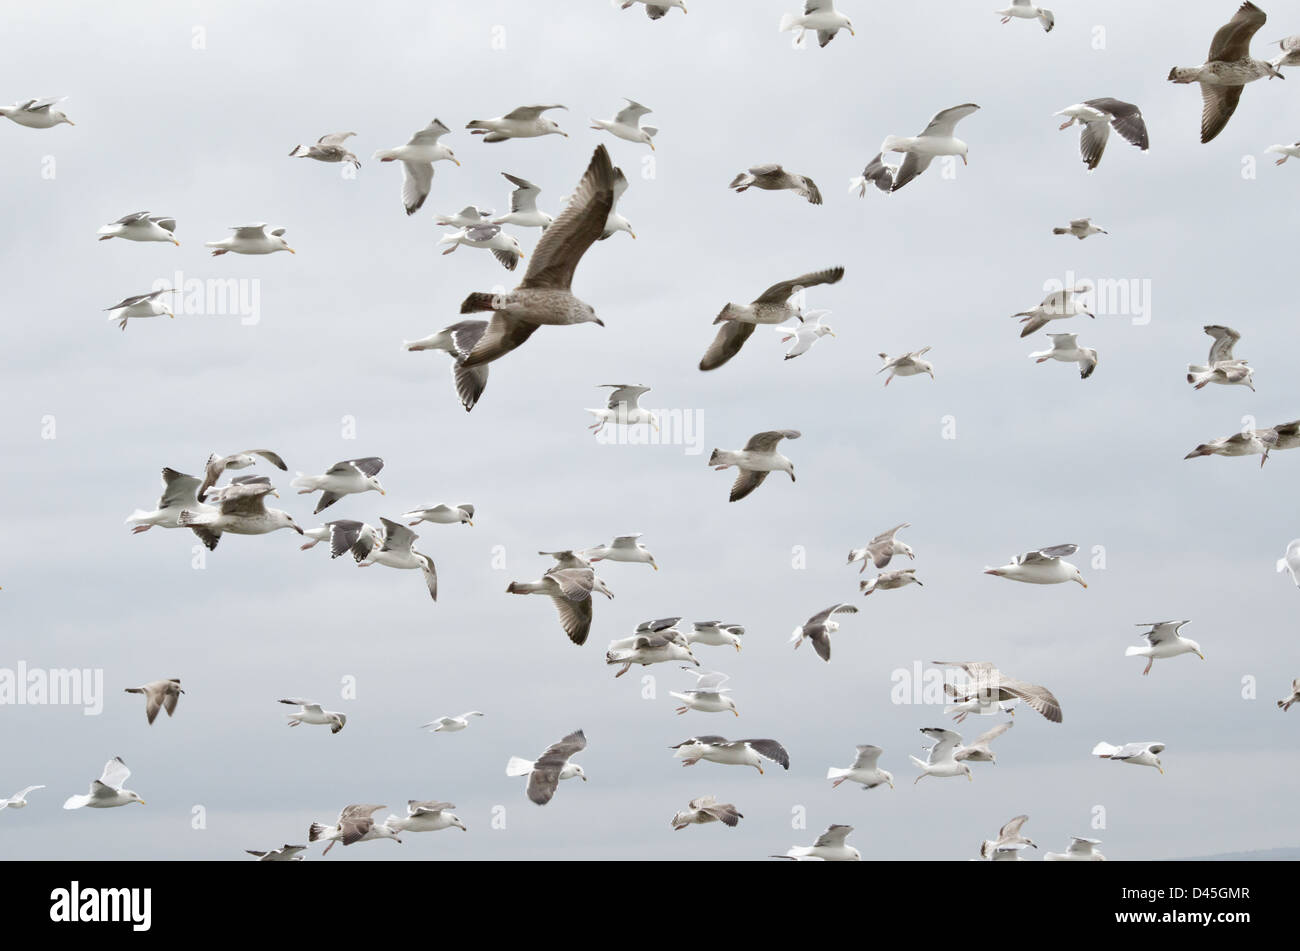 flock of seagulls glide in the wind. - Stock Image